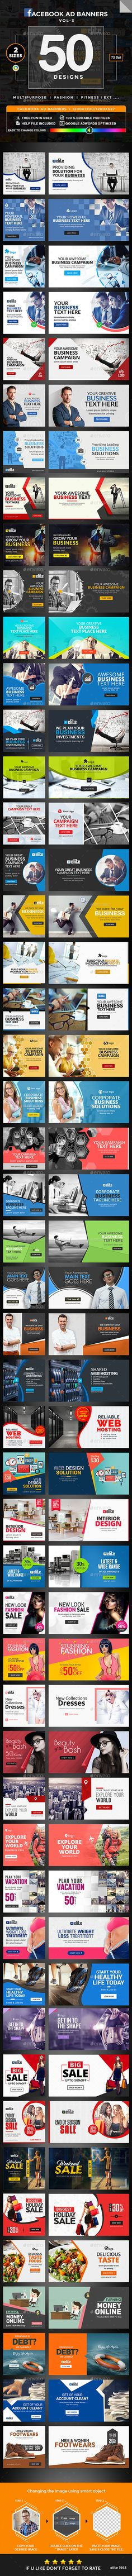 Multipurpose Facebook Newsfeed Ads Design Template - 50 Designs - 2 Sizes Each - Social Media Banner Ads Design Template PSD. Download here: https://graphicriver.net/item/multipurpose-facebook-newsfeed-ads-50-designs-2-sizes-each/18711811?ref=yinkira